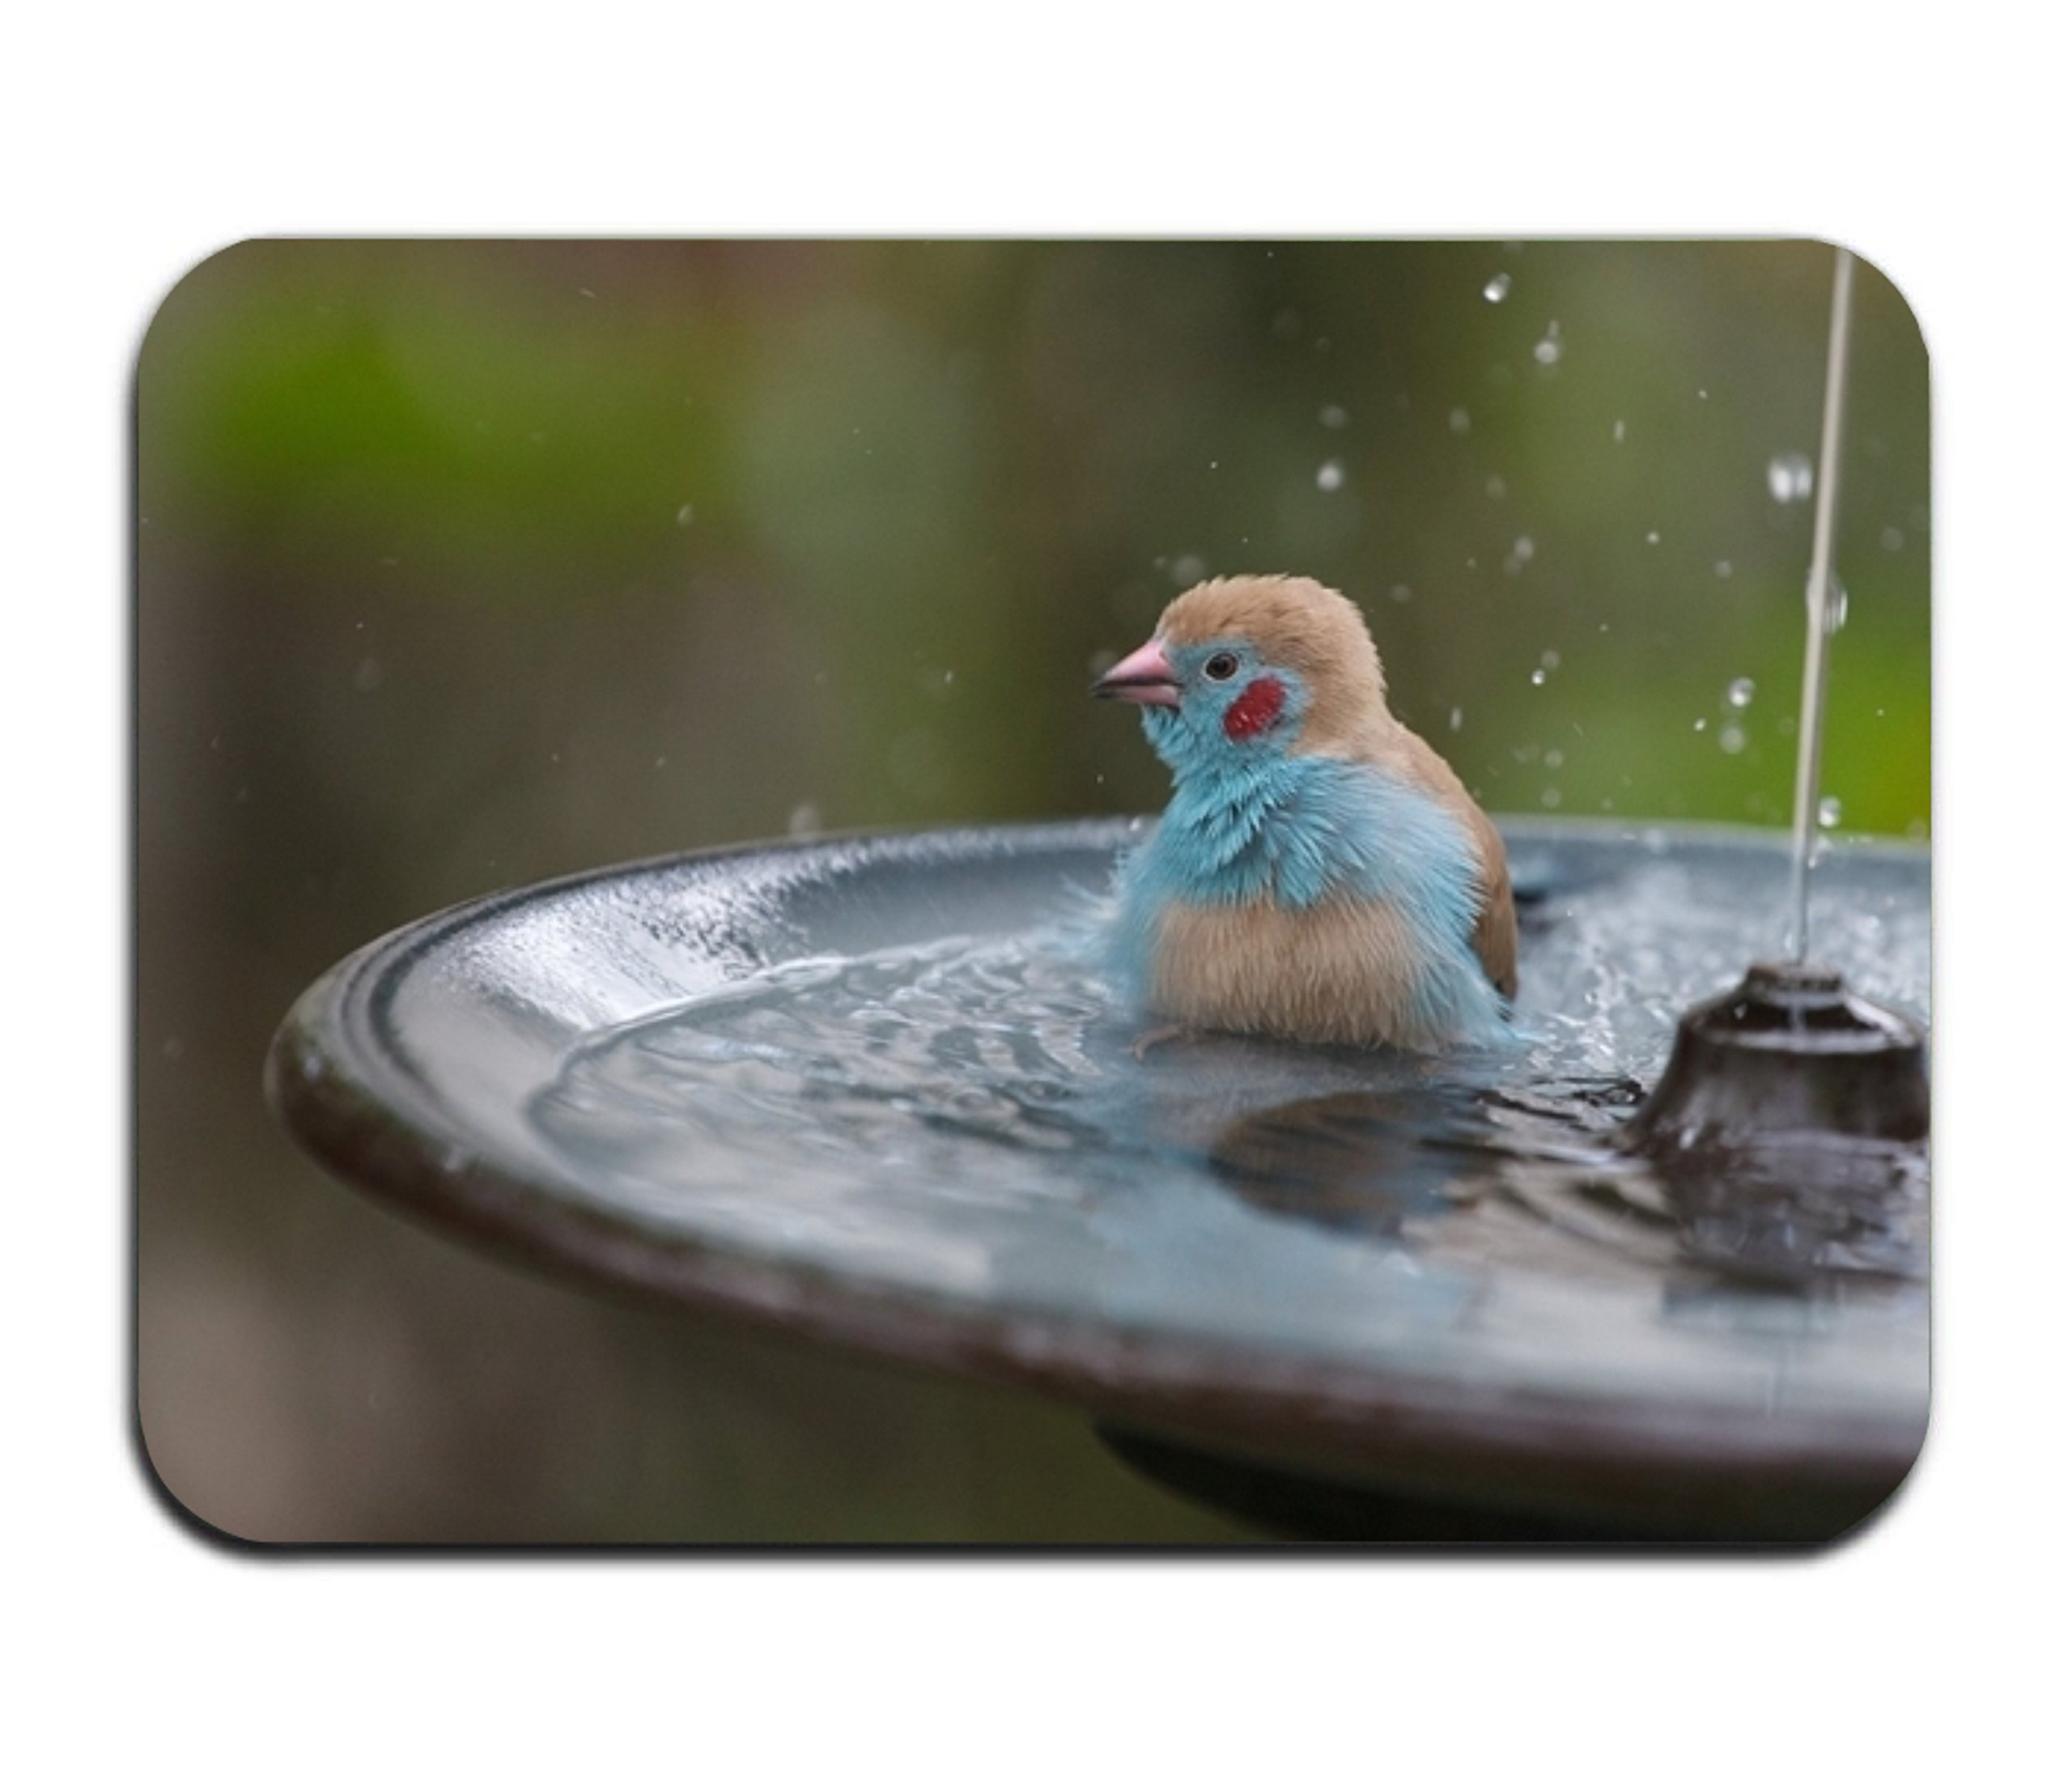 Cecil Beard Bird Blur Fountain Bathroom Kitchen Rug Mat Welcome Door MatPrinted